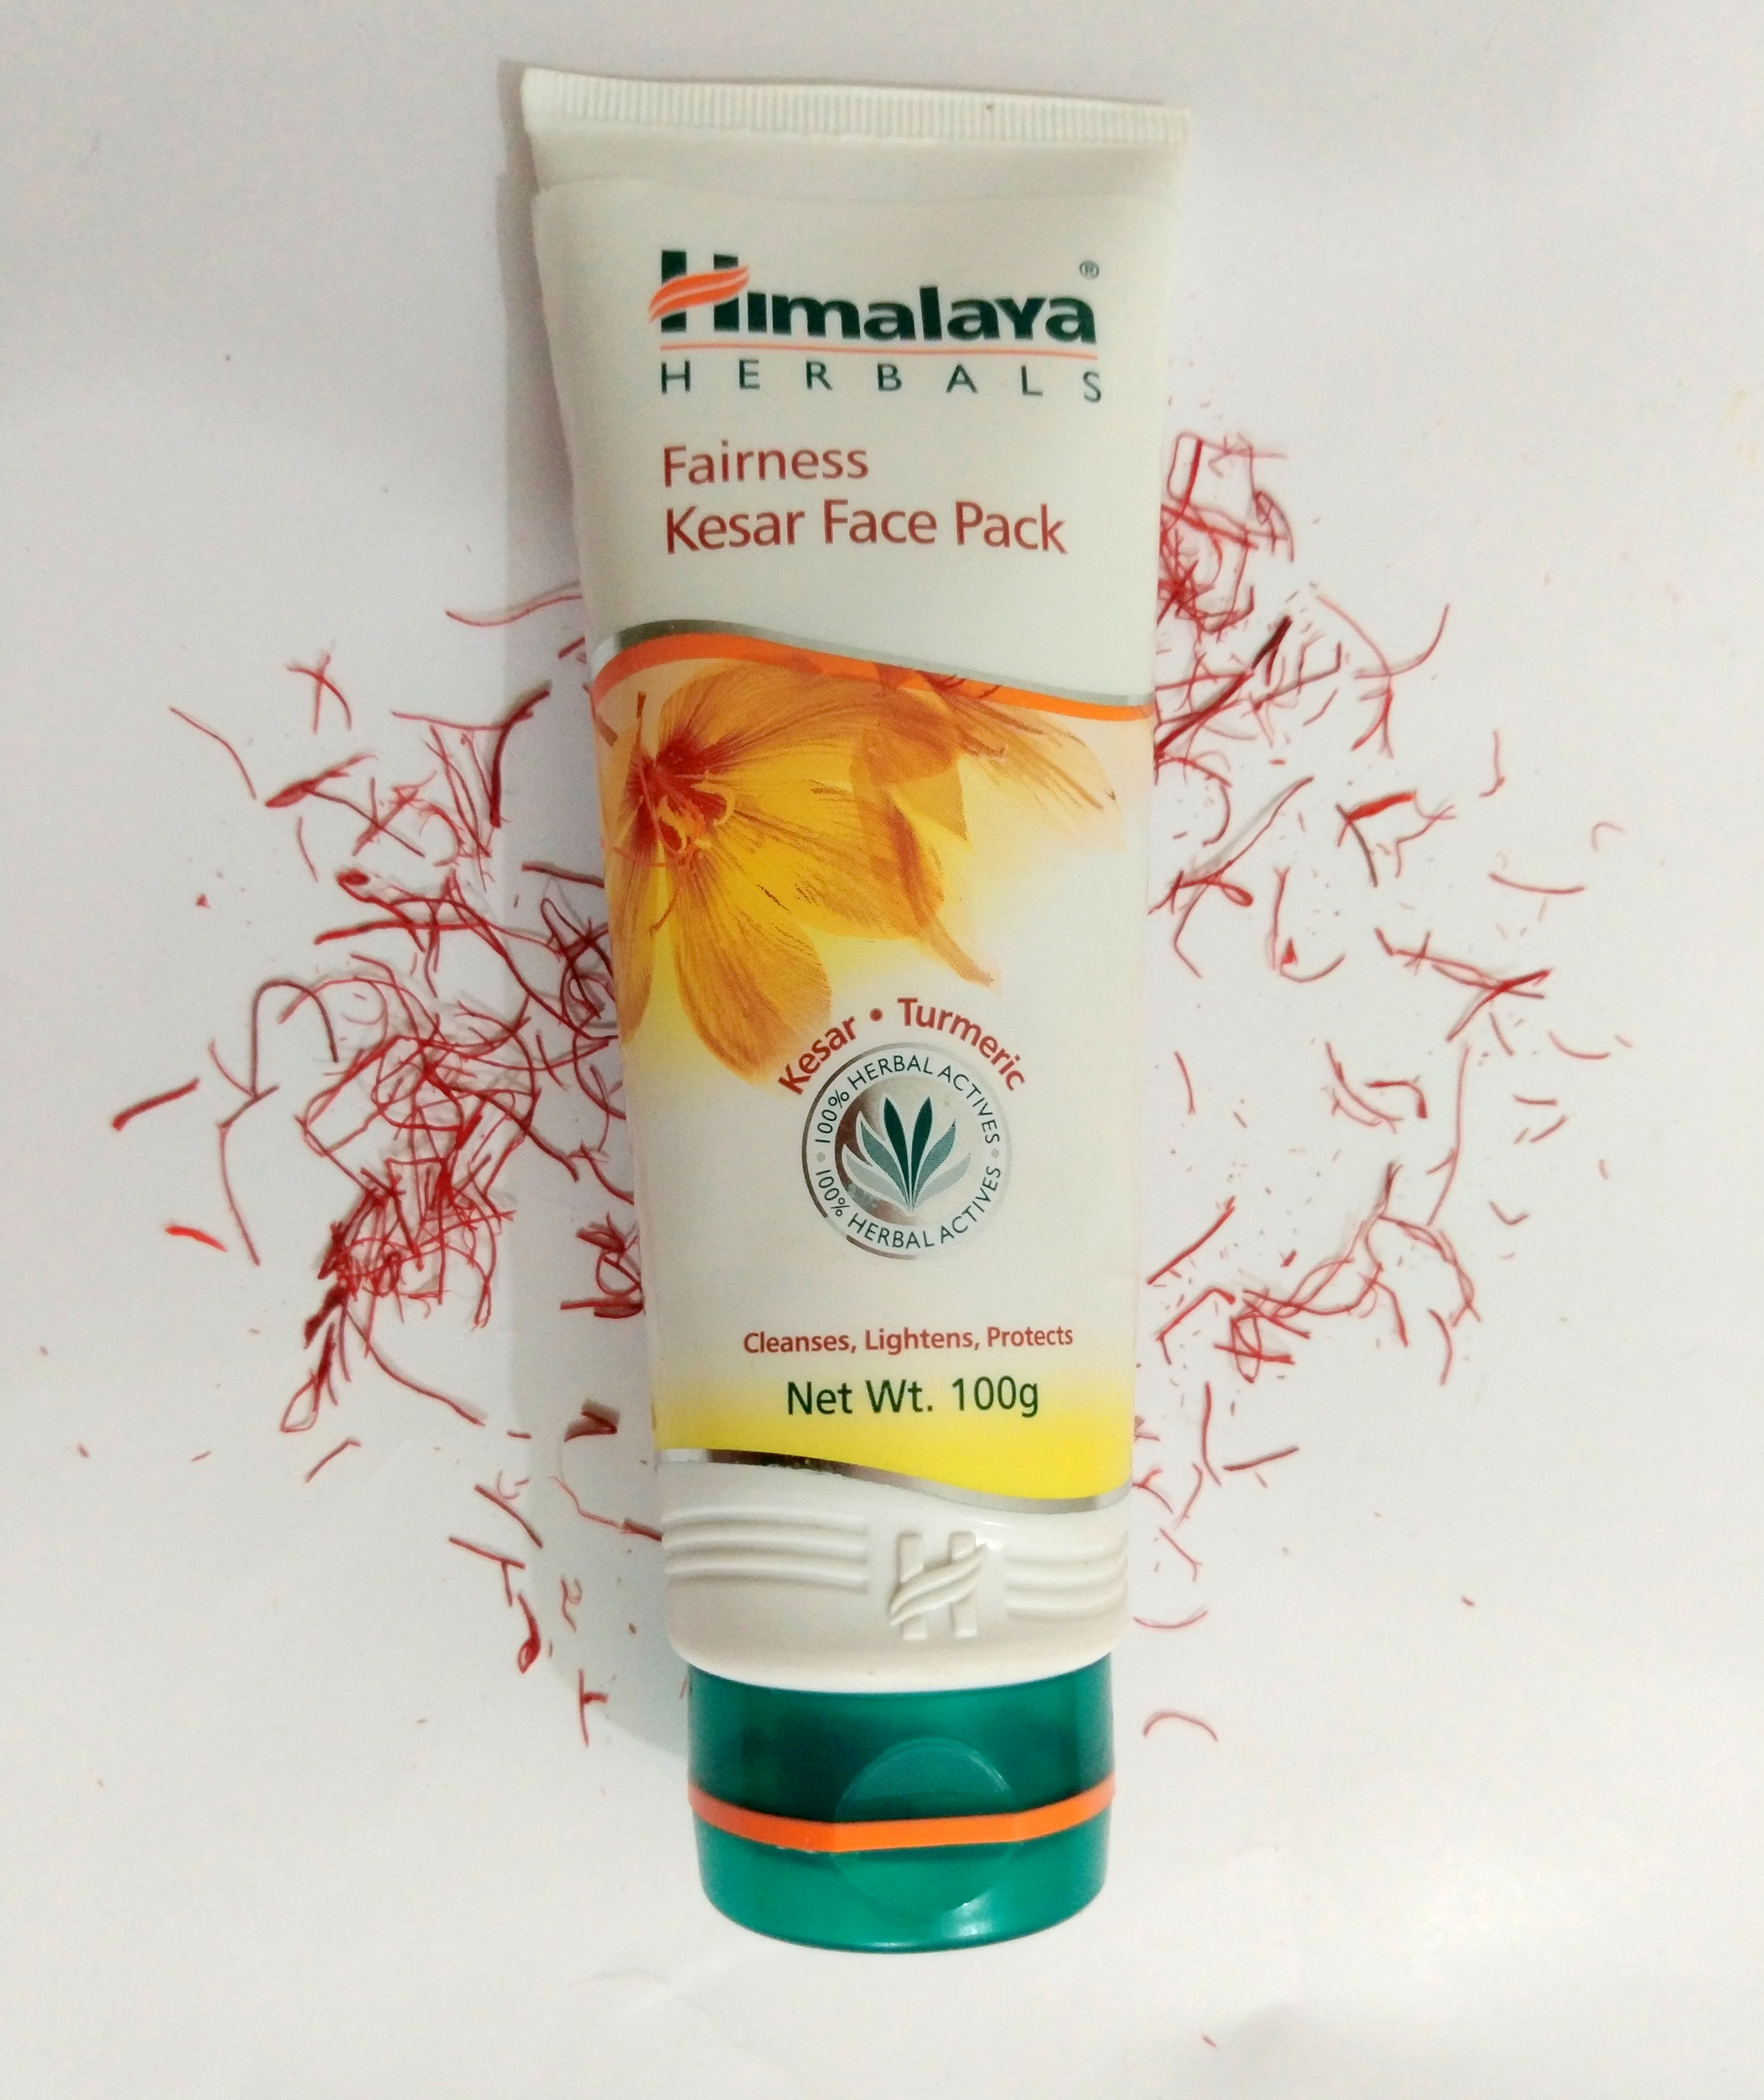 Himalaya Fairness Kesar Face Packe